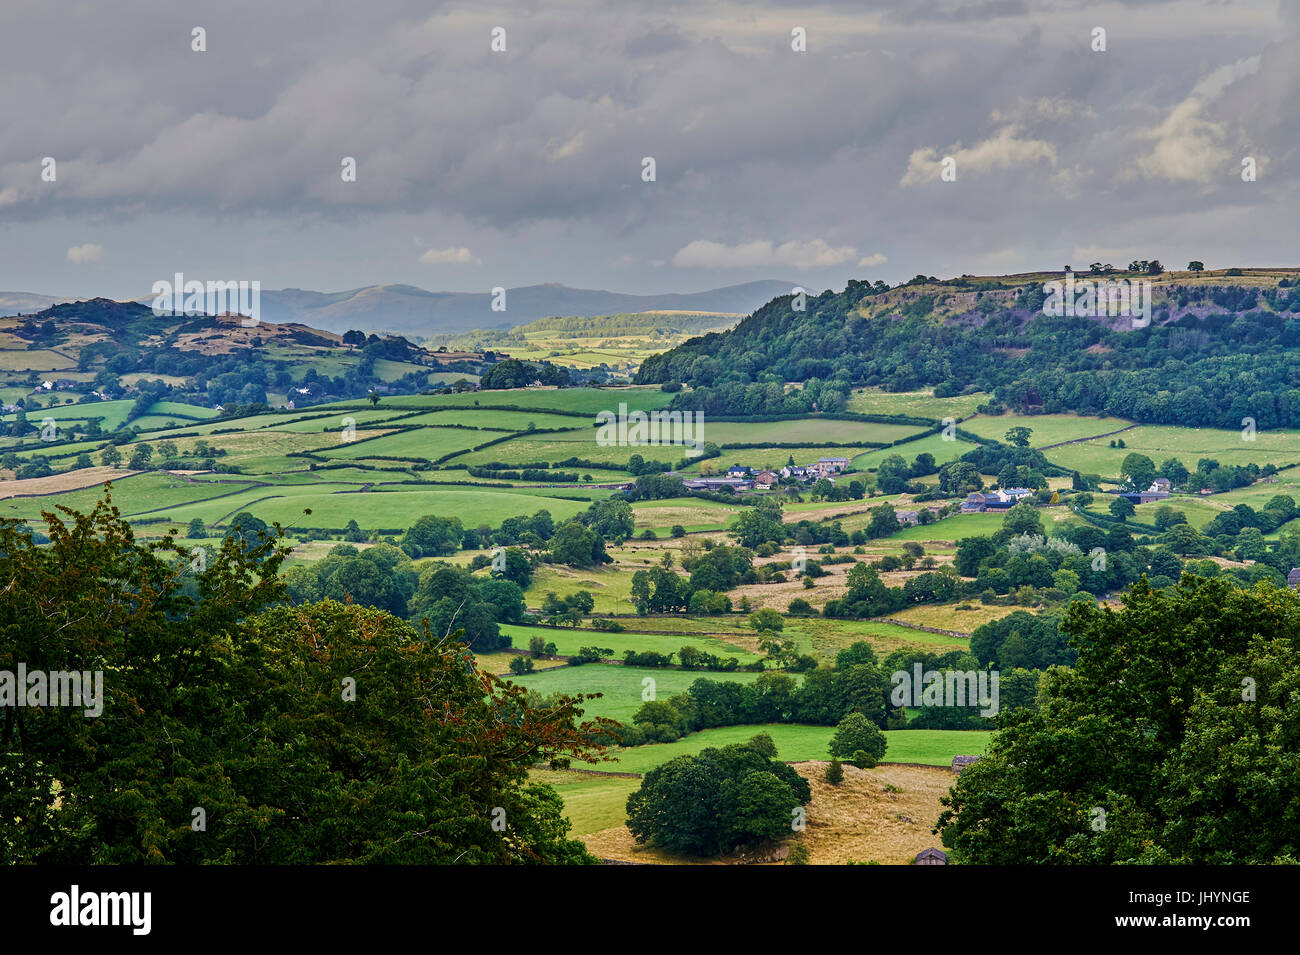 View to the North from triangulation point, Cartmel Fell, South Lakeland, Cumbria, England, United Kingdom, Europe - Stock Image